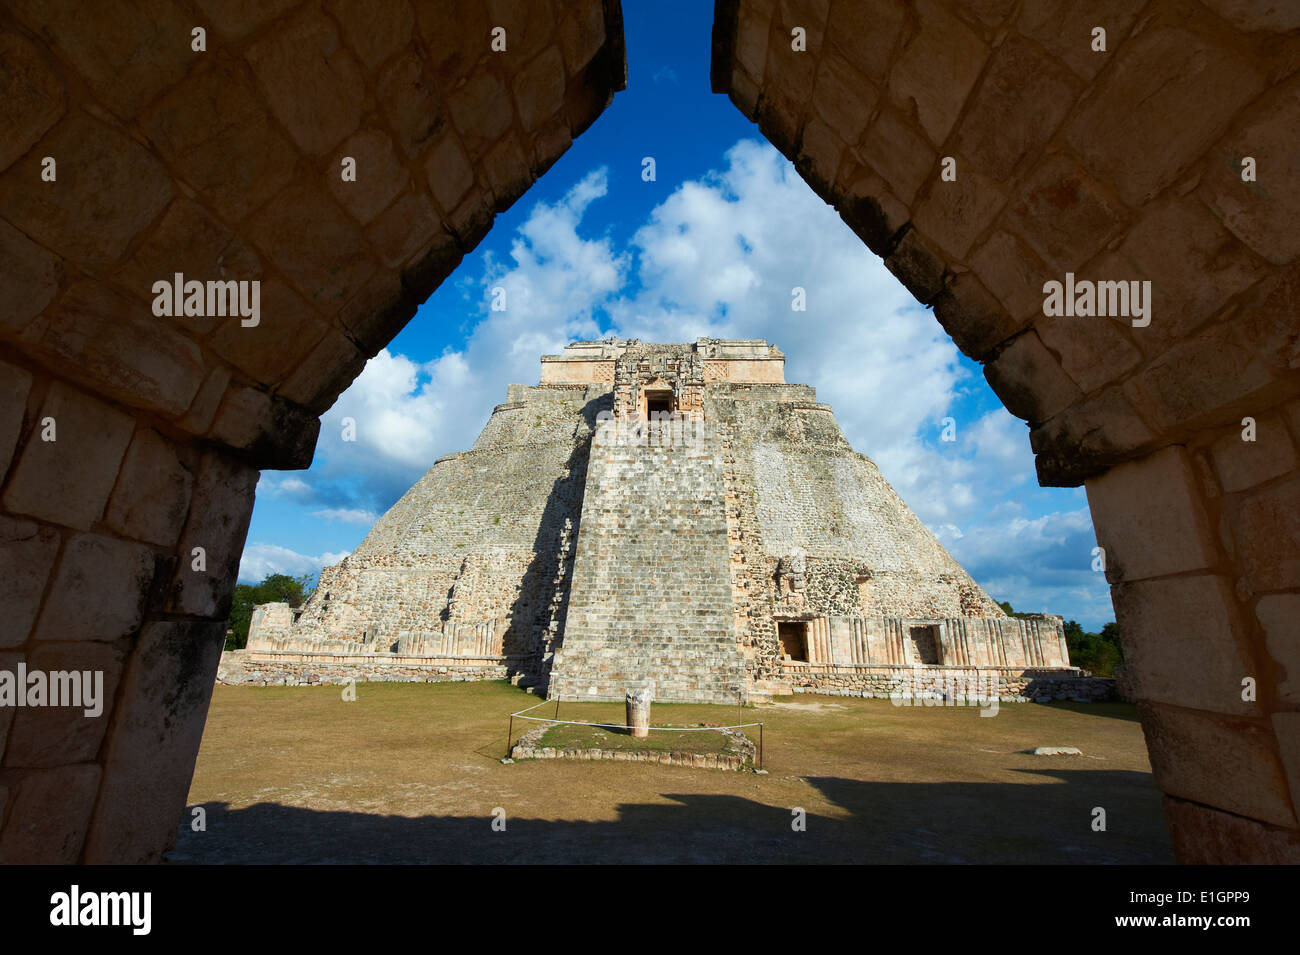 Mexico, Yucatan state, Uxmal, archaeological Mayan site, world heritage of the UNESCO, Magicians Pyramid, Governor's Stock Photo